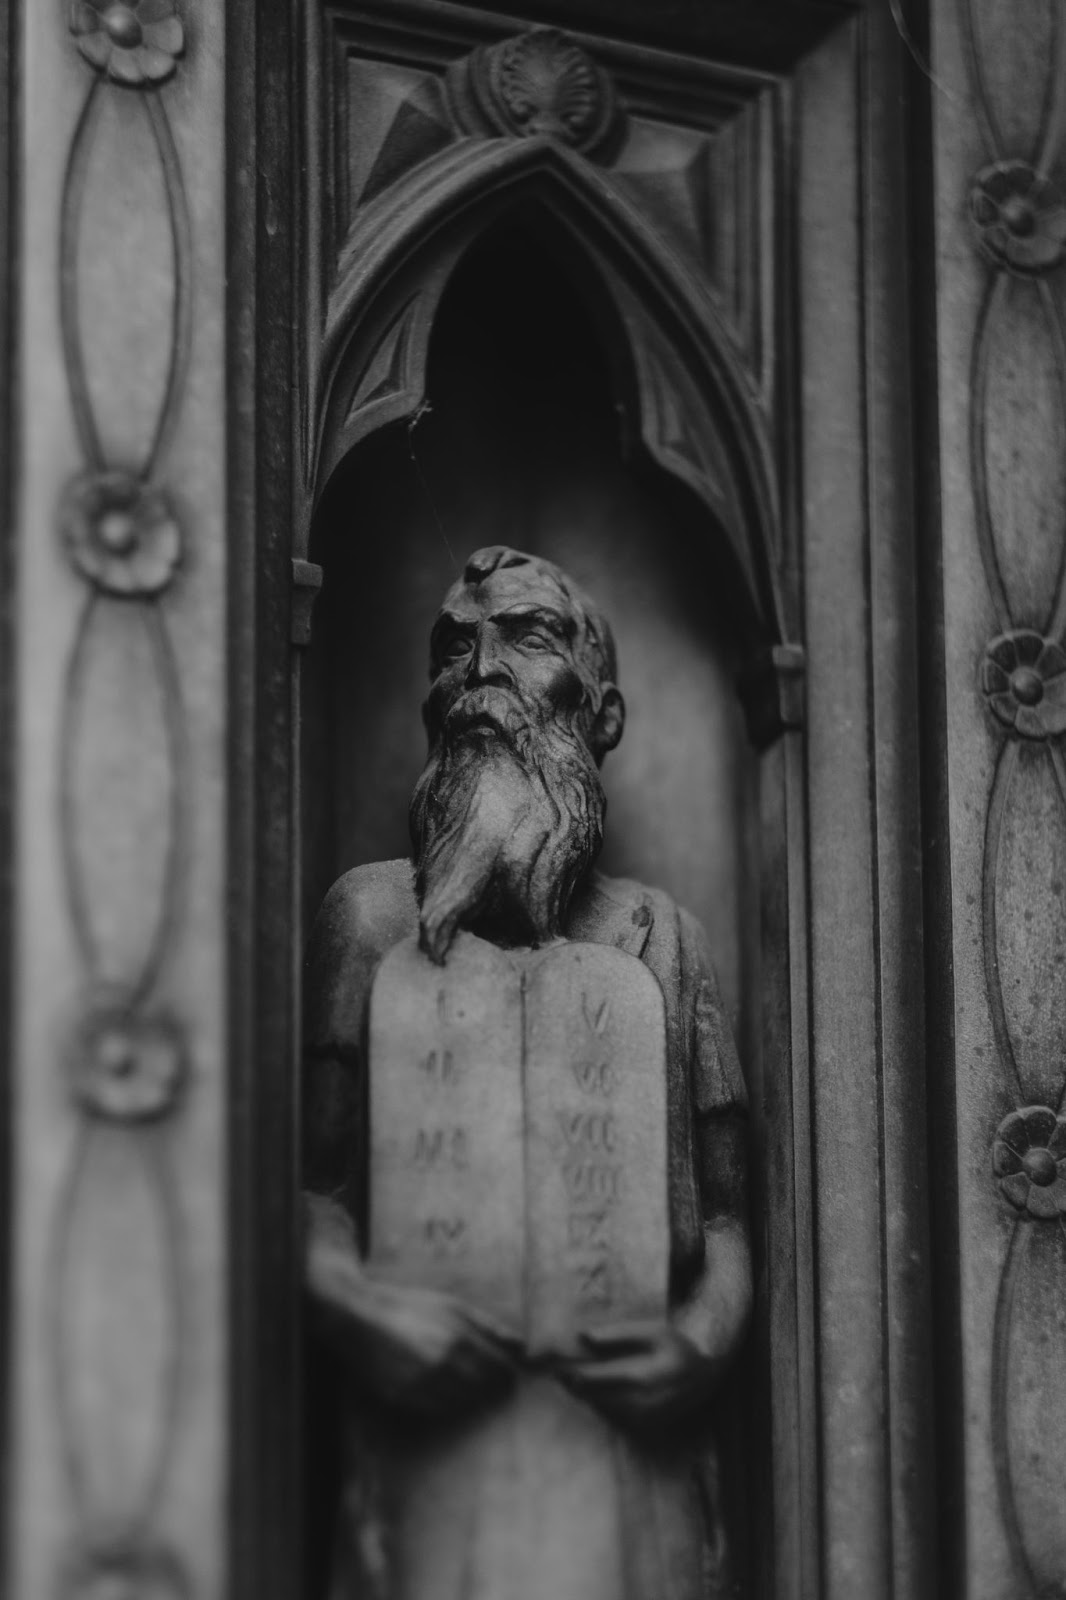 Statue of Moses holding the tablets of the Ten Commandments,